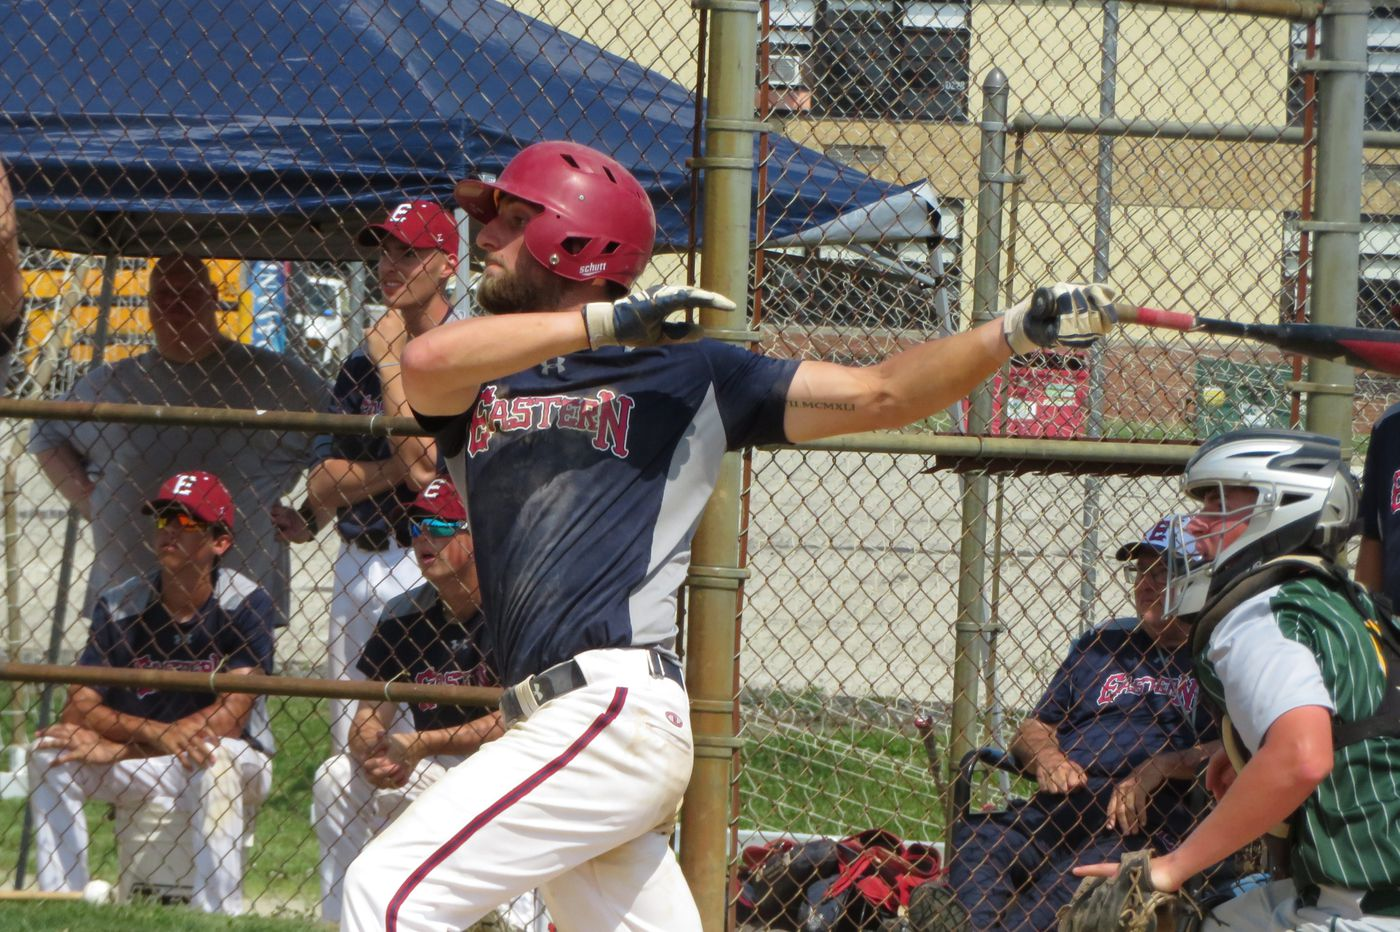 Eastern's Jack Herman to sign with Pittsburgh Pirates